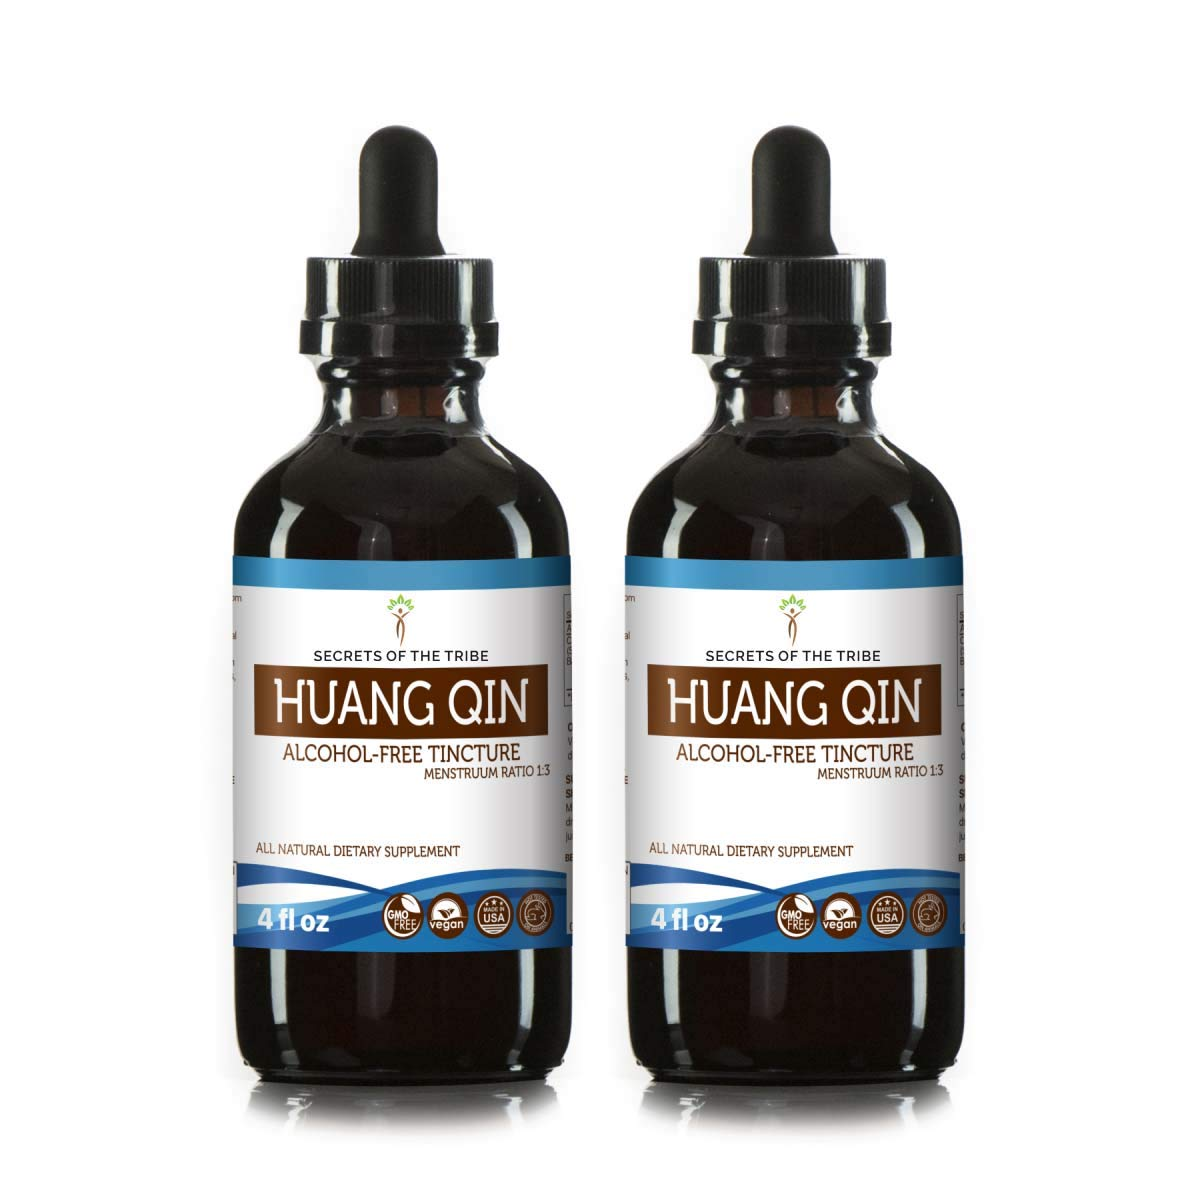 Huang Qin Tincture Alcohol Extract-Free, Organic Huang Qin Scutellaria Root, Radix Scutellariae Baicalensis Remove Heat in The Body 2x4 OZ